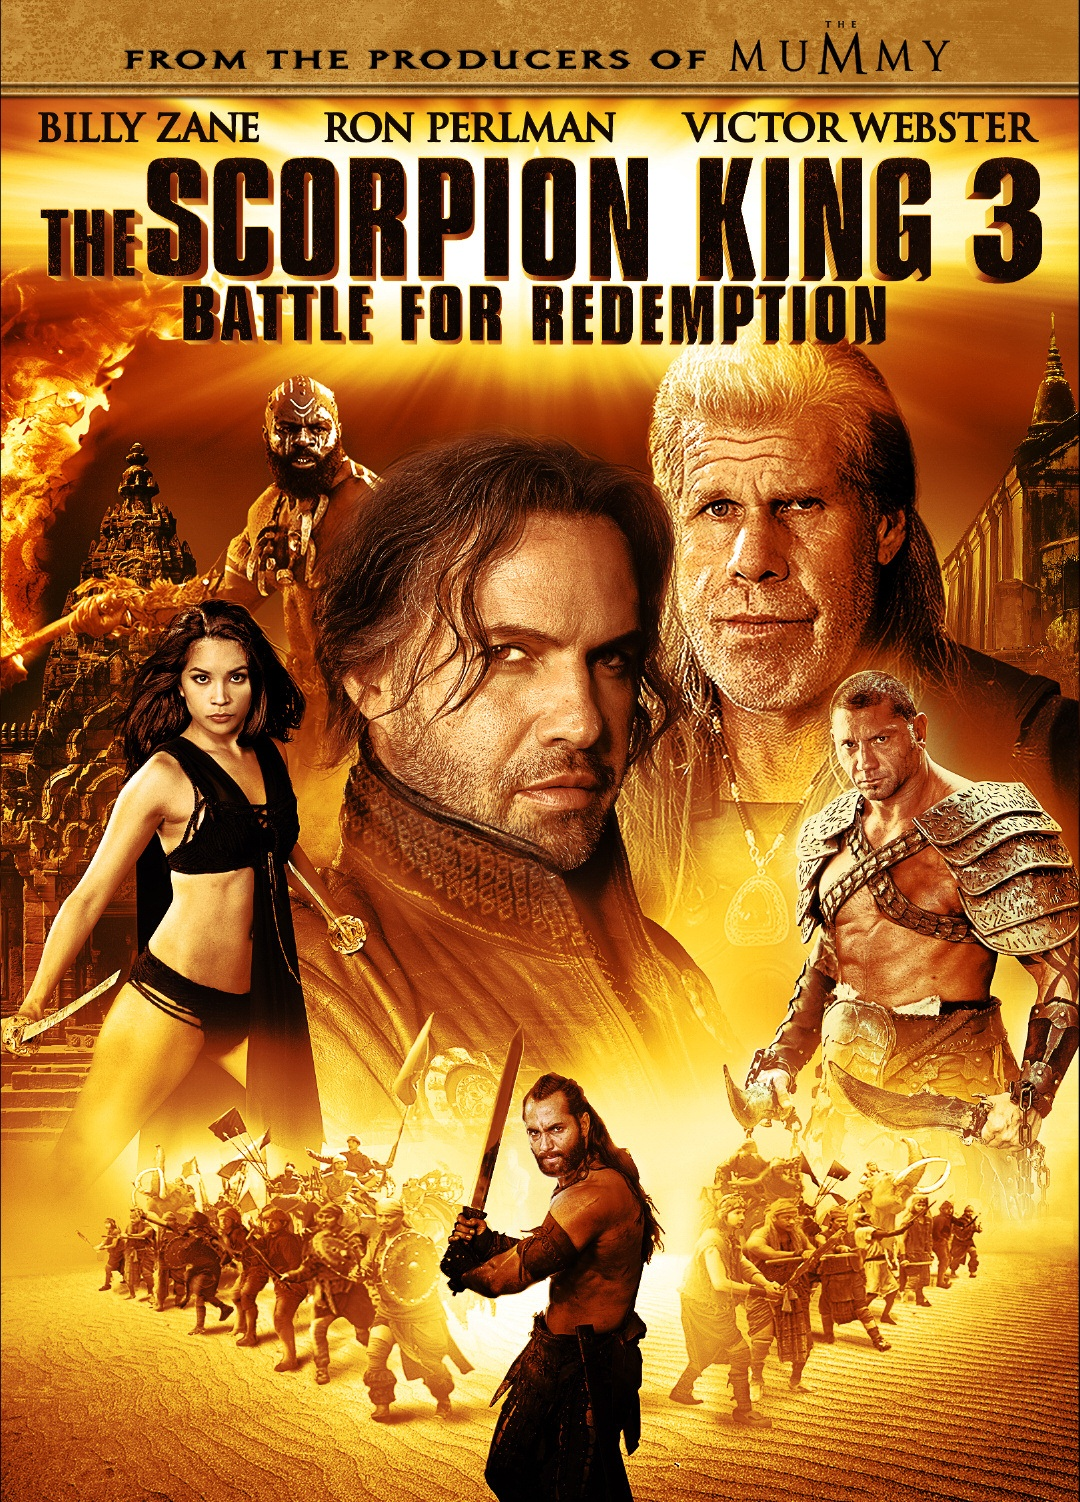 The scorpion king 2 rise of a warrior movie online